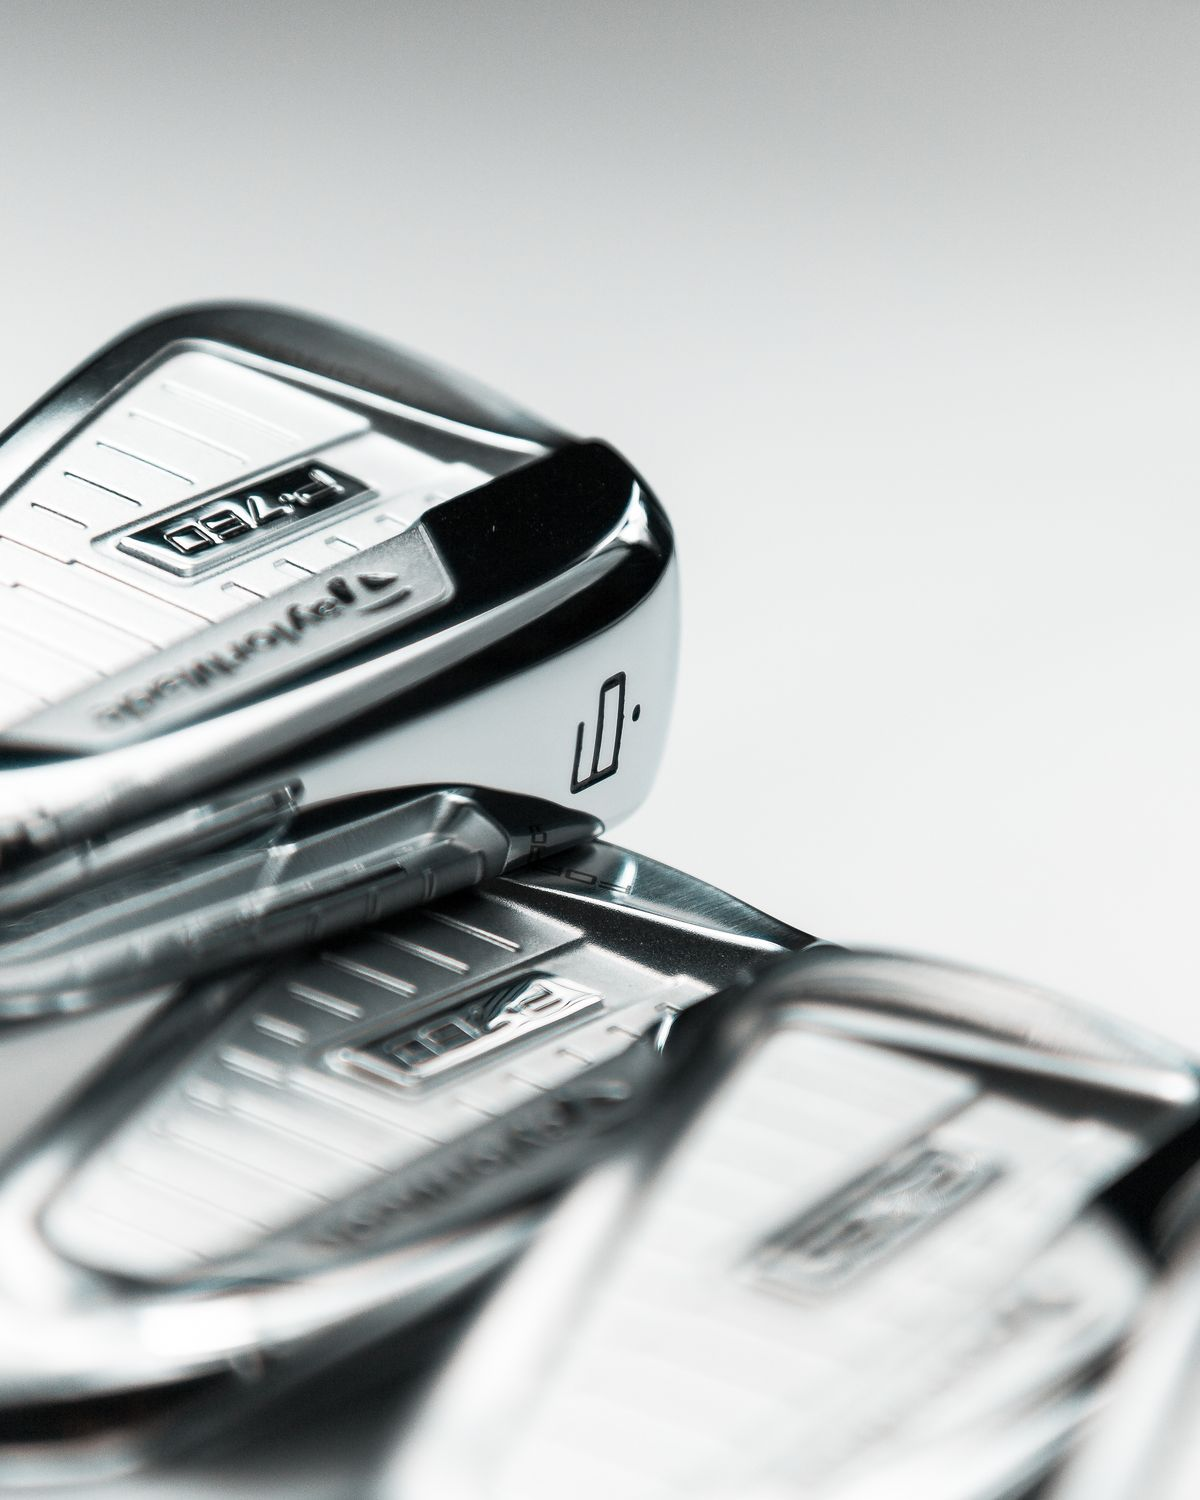 New Set of Irons for Haotong Li